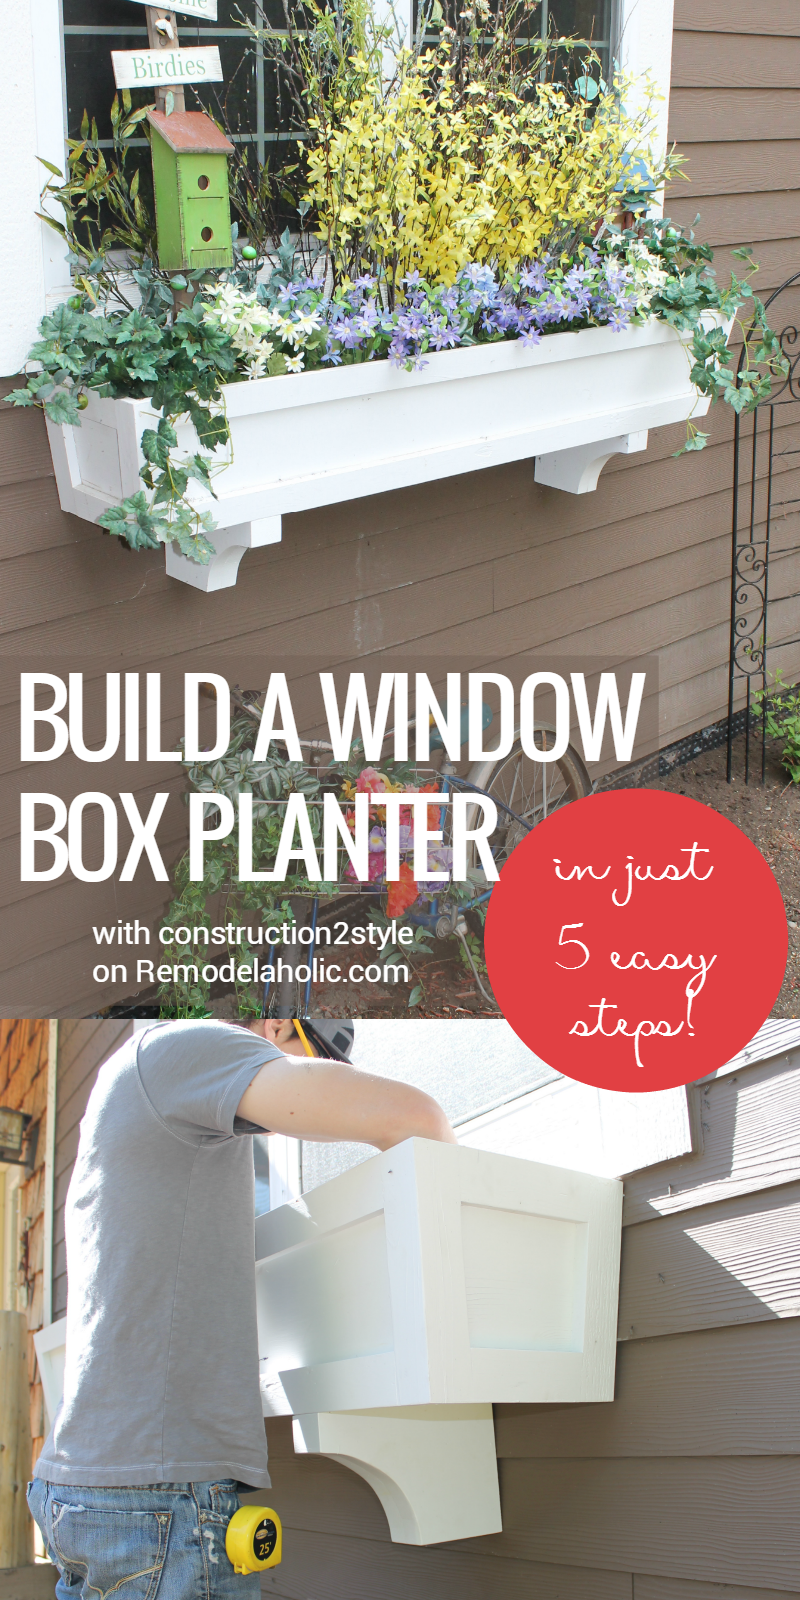 remodelaholic how to build a window box planter in 5 steps. Black Bedroom Furniture Sets. Home Design Ideas